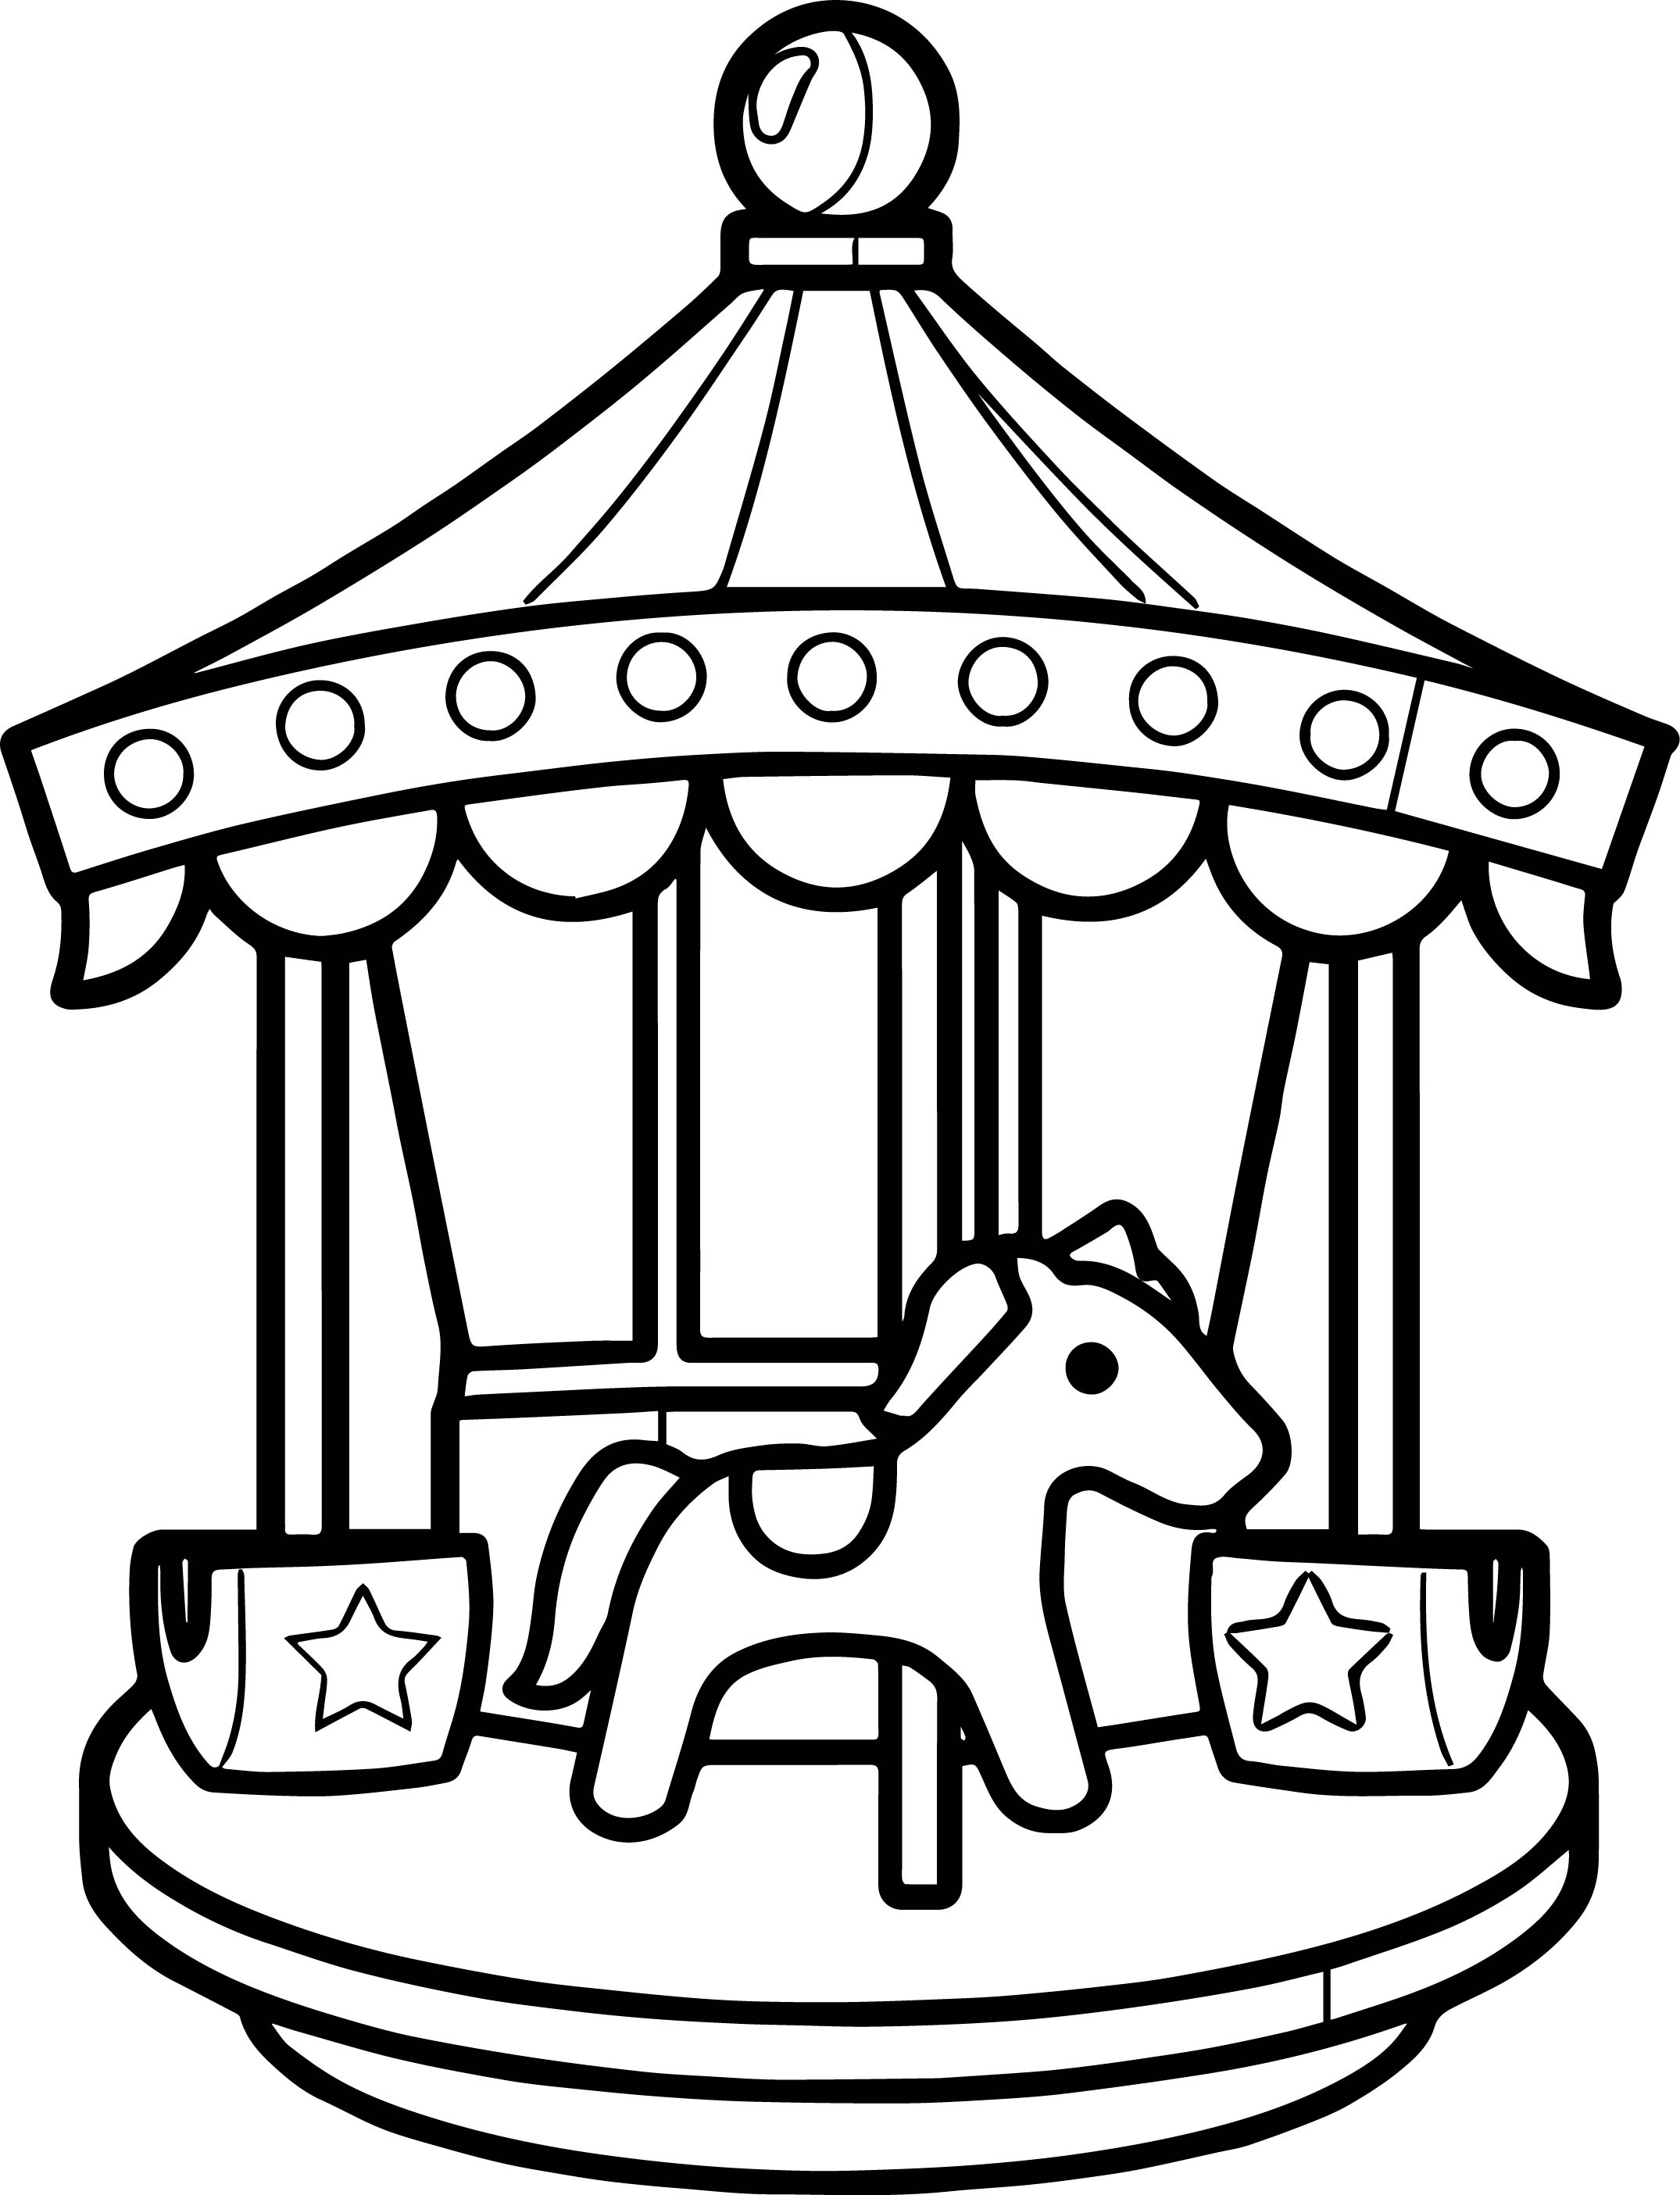 Carousel Coloring Page Wecoloringpage - coloring page of a carousel